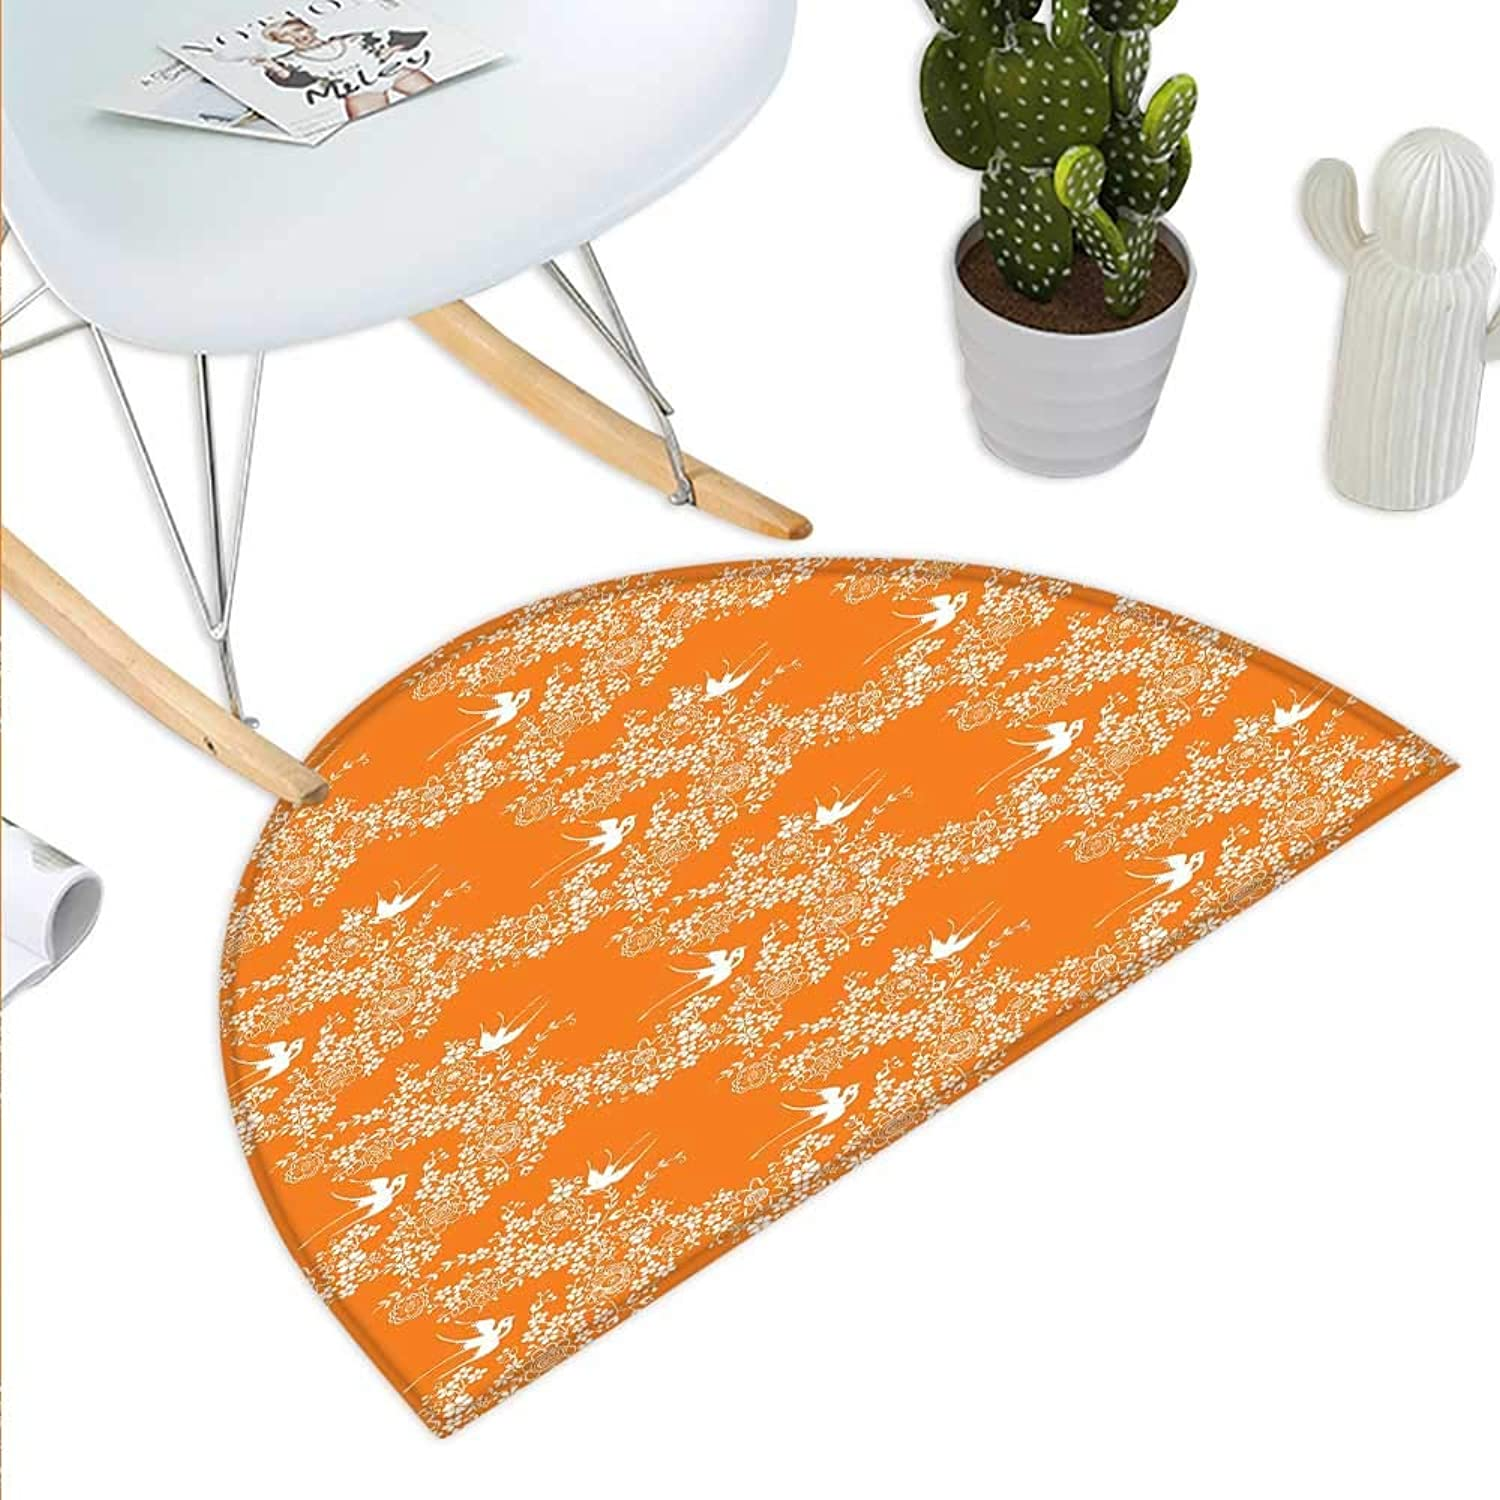 orange Semicircle Doormat Asian Style Spring Meadow Pattern with Branches in Full Blossom with Birds Nature Halfmoon doormats H 39.3  xD 59  orange White